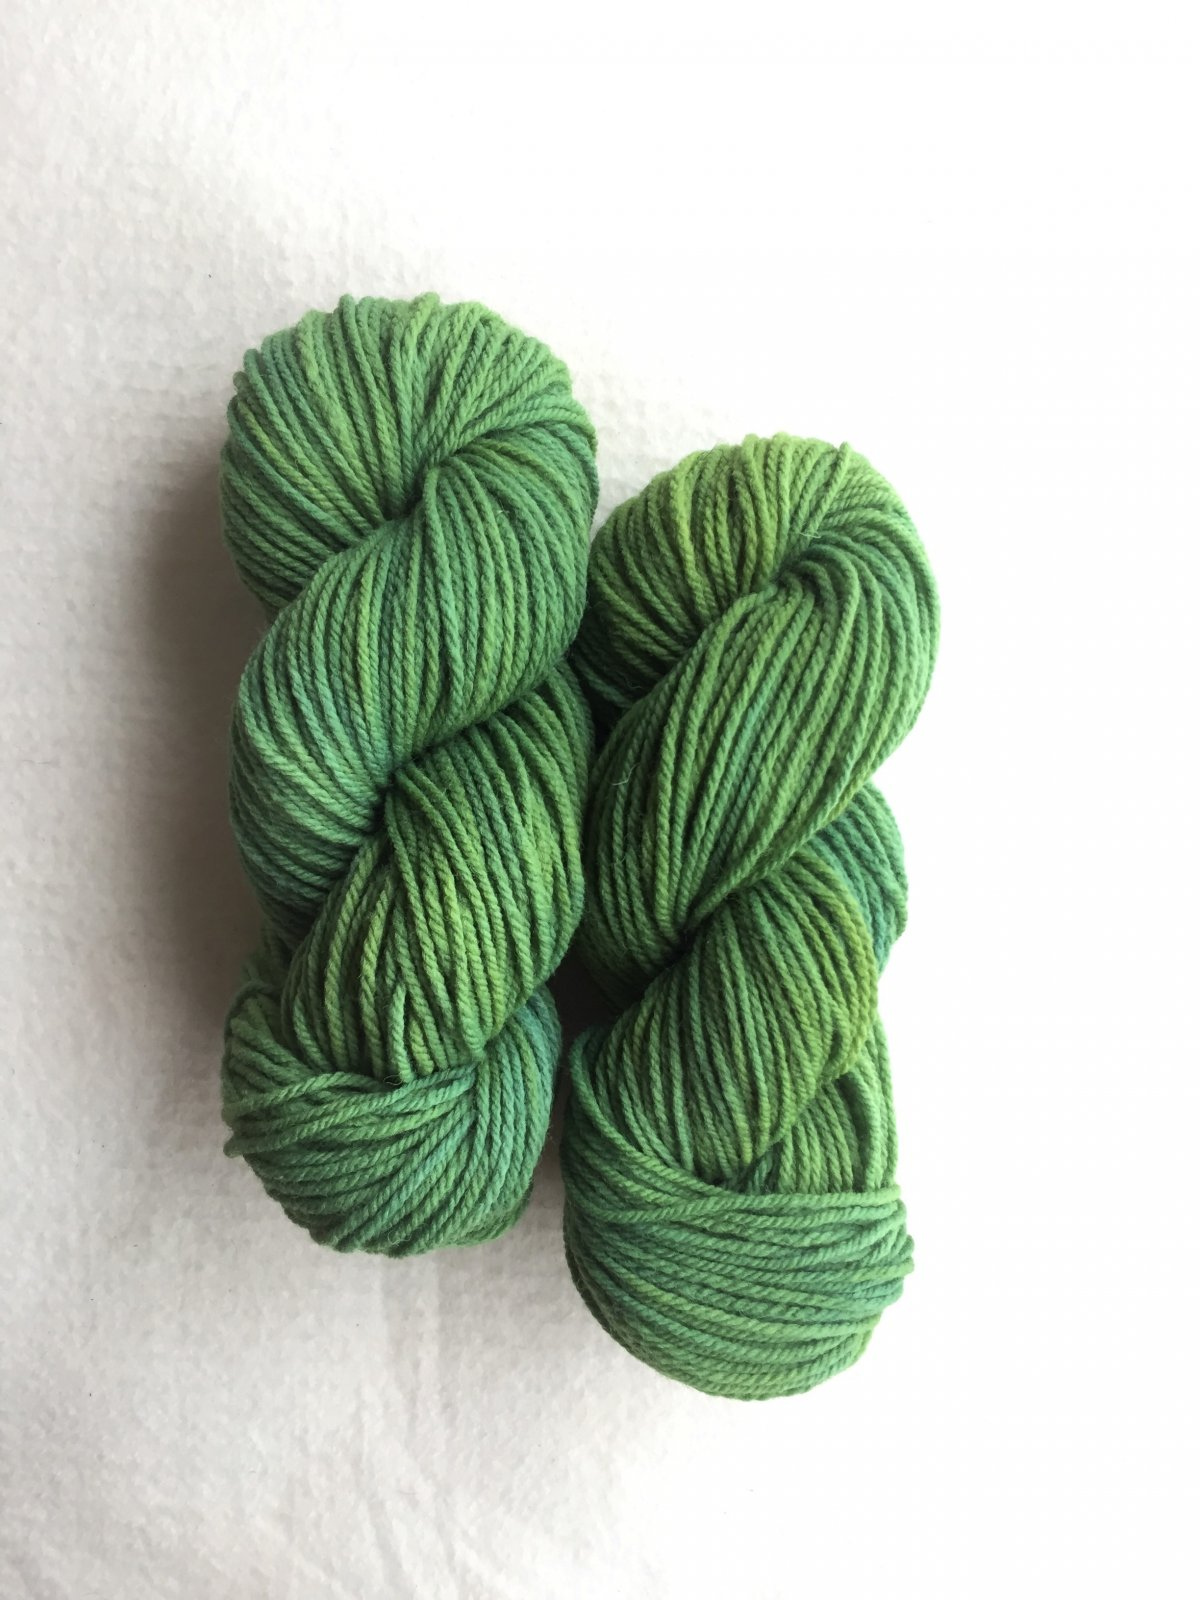 Sorcha by Pindrop Fibers